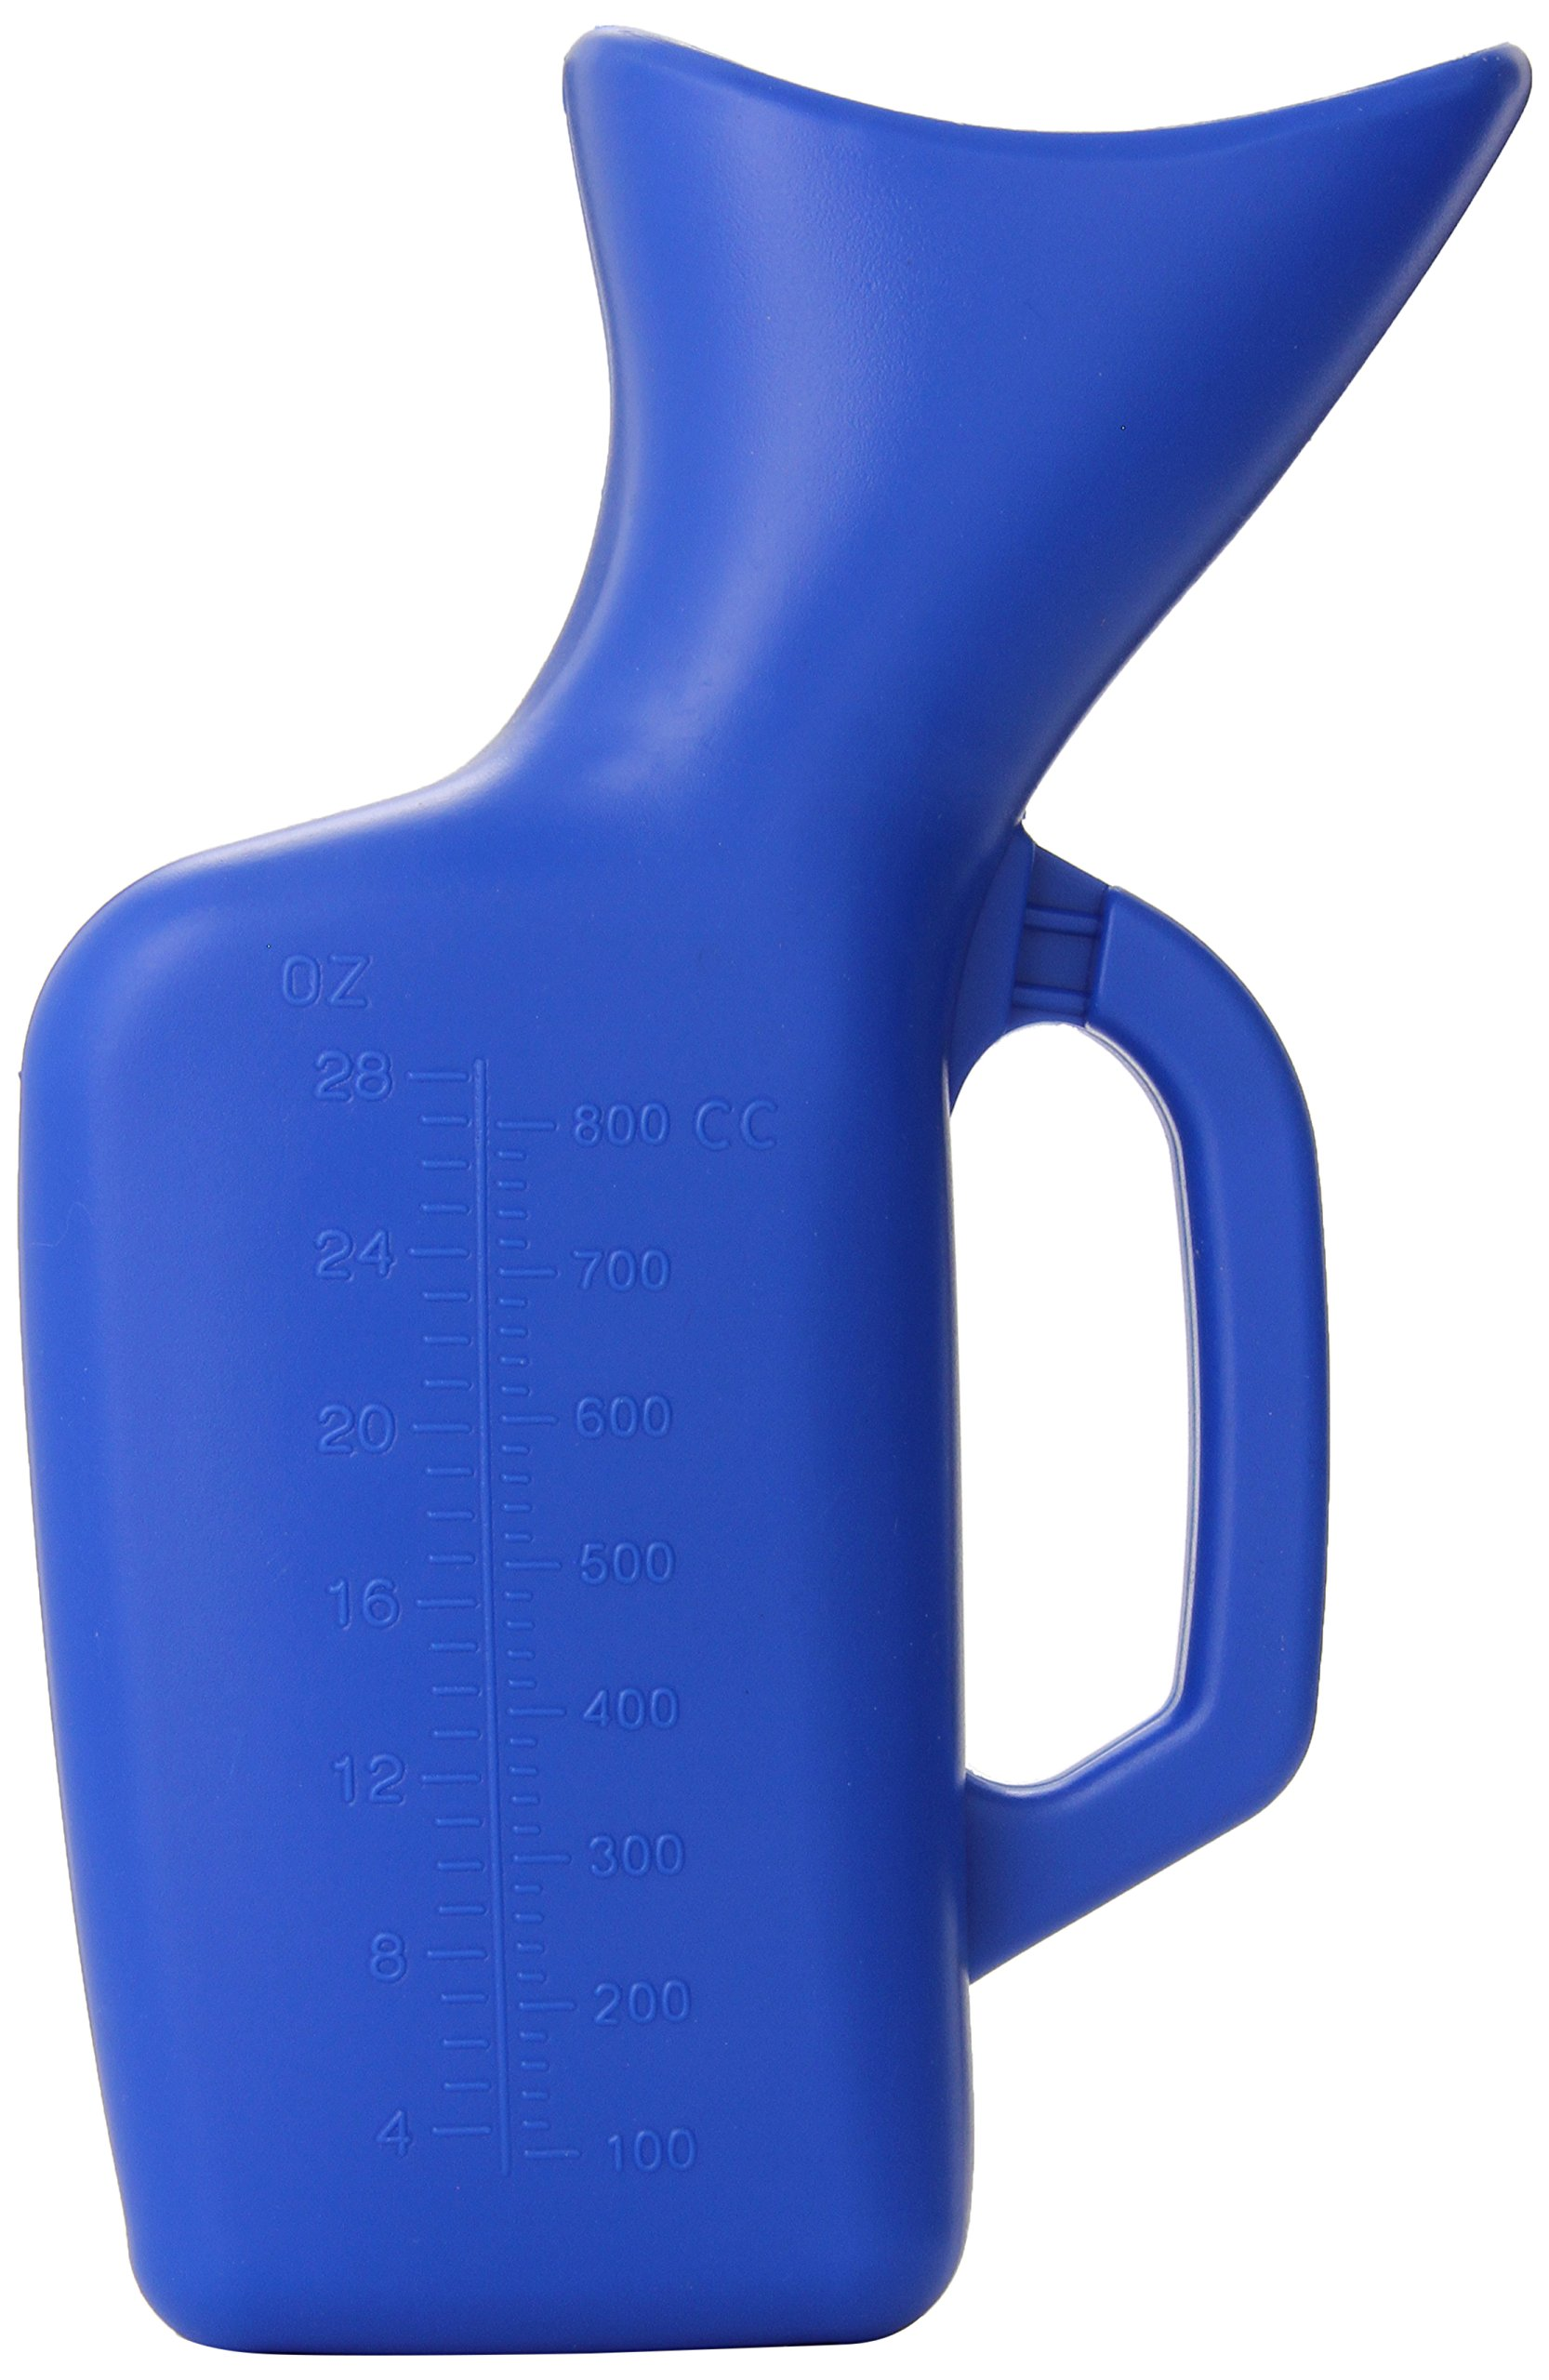 Lumex Female Portable and Reusable Plastic Urinal,  Blue, 28-Ounce Capacity